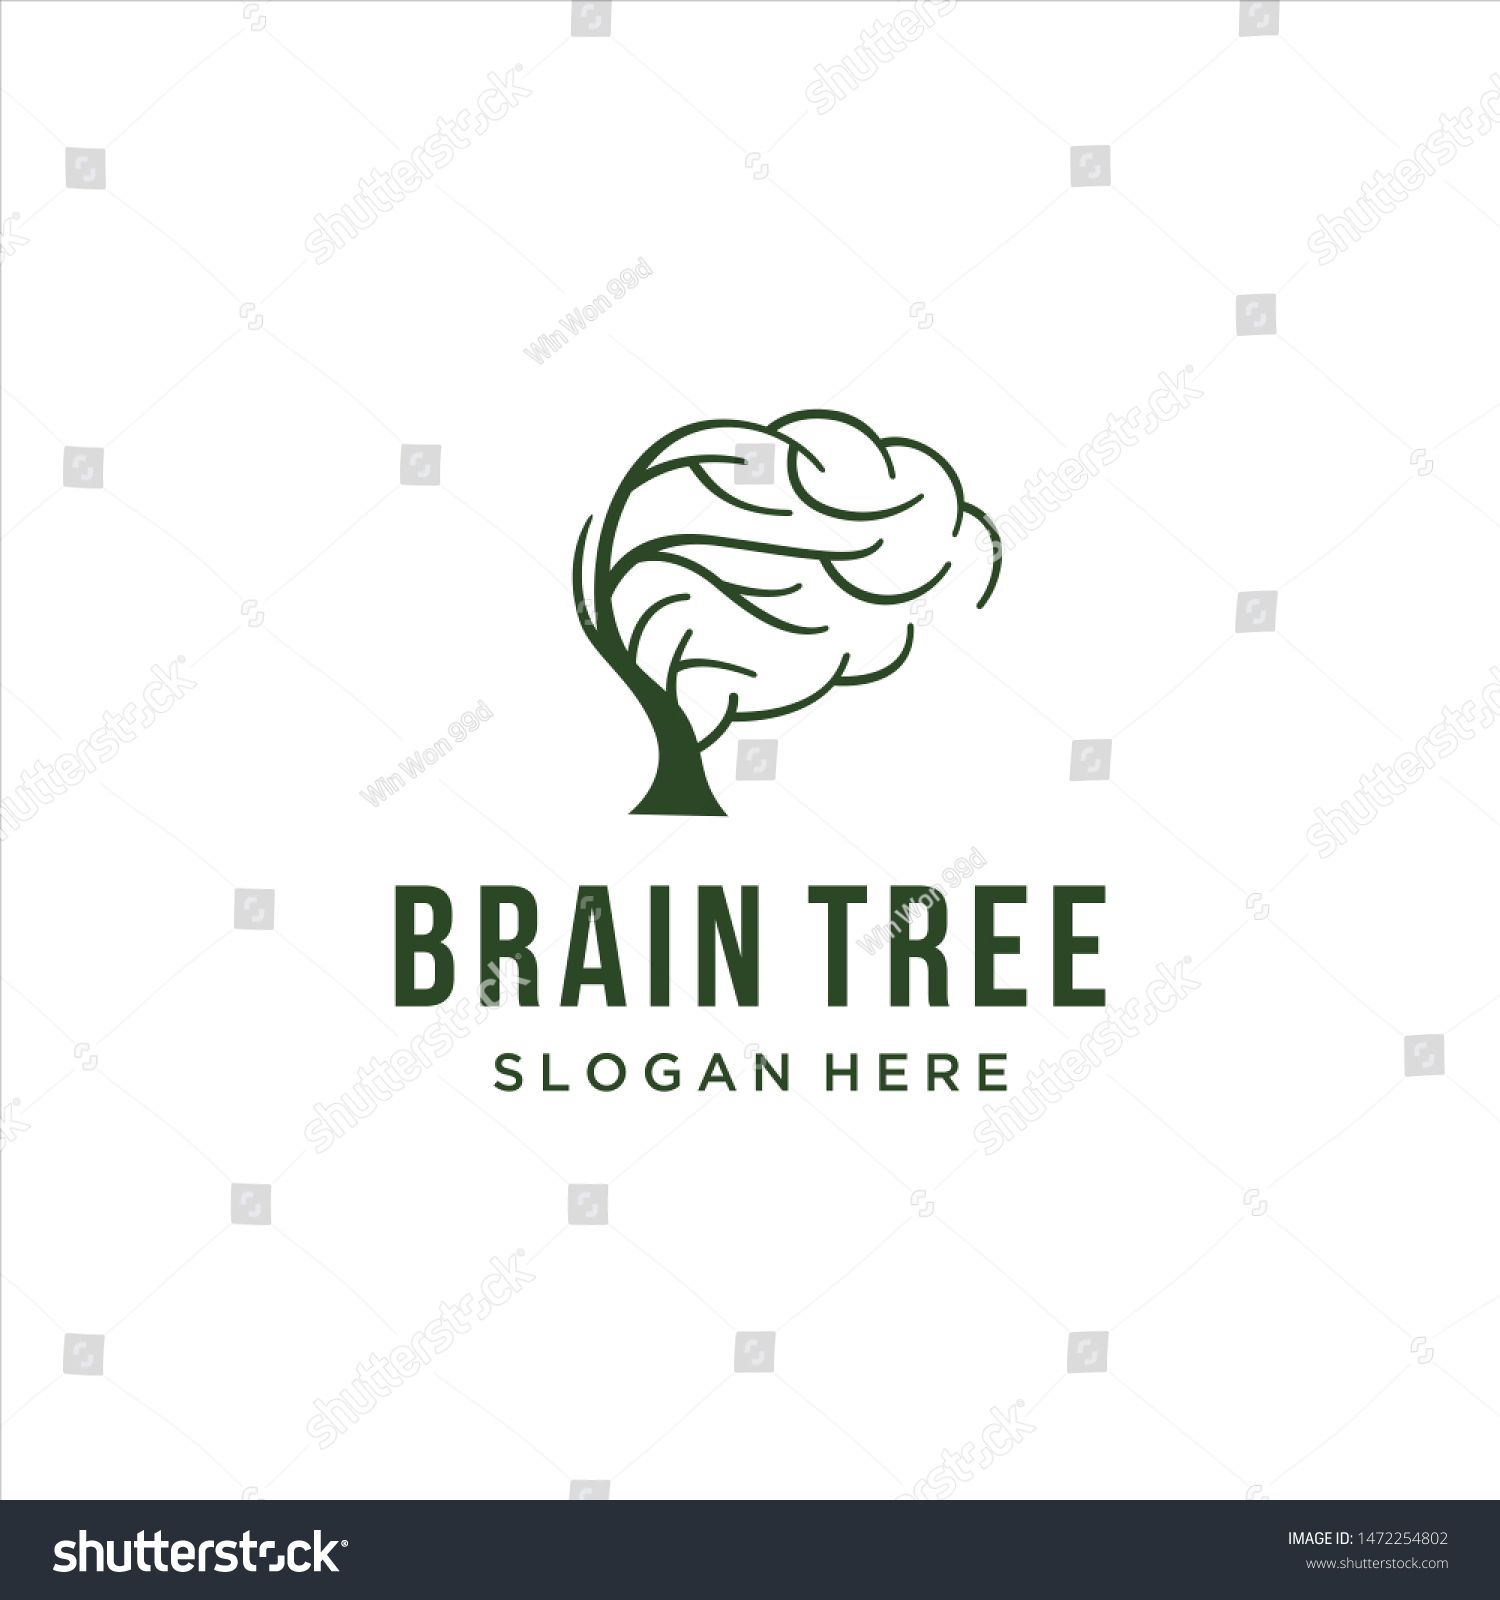 brain tree logo for education simple icon of brain and tree